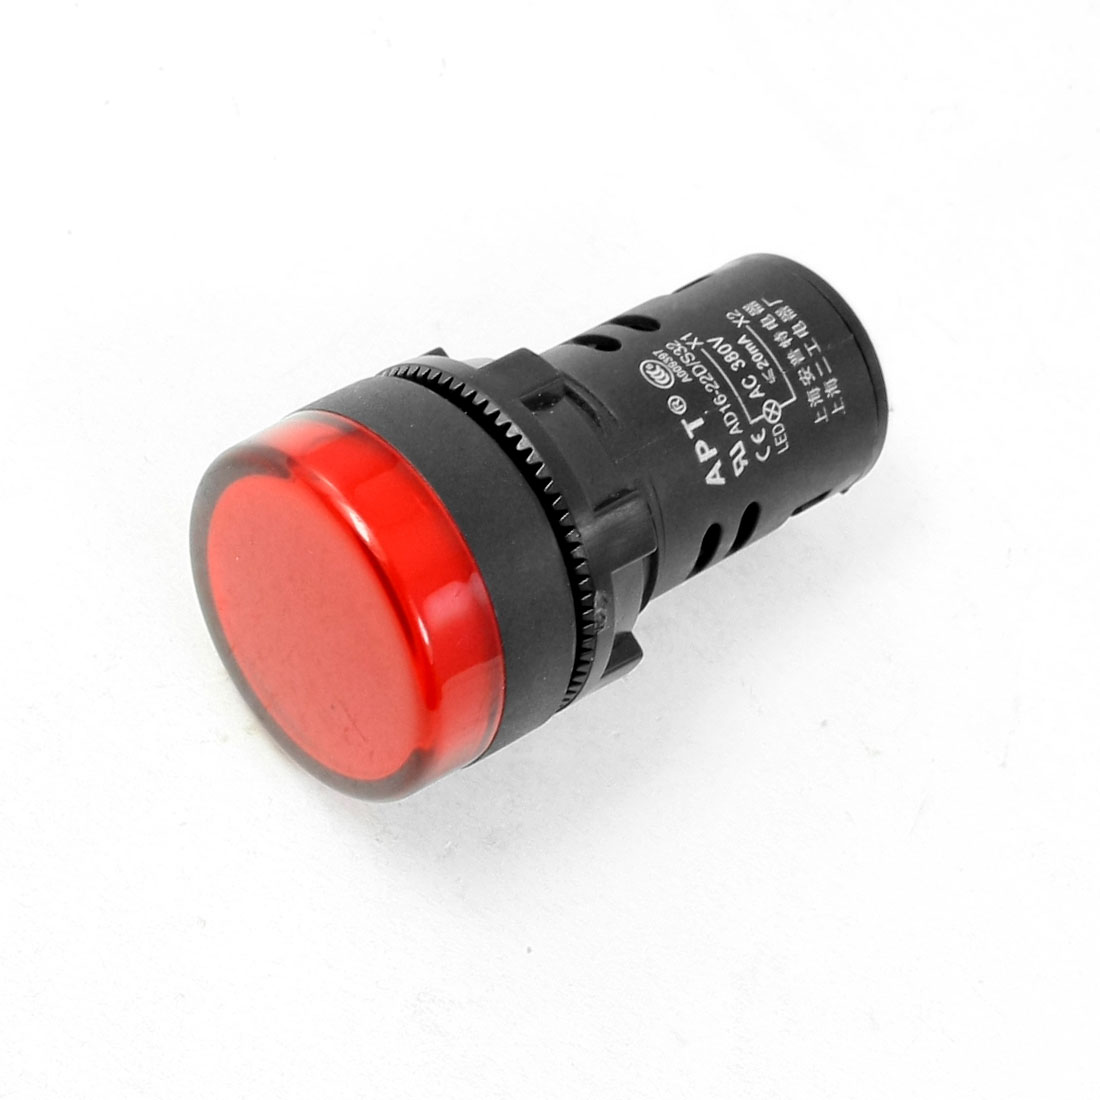 AC 380V 20mA 27mm Dia Red LED Signal Indicator Light Lamp AD16-22D/S32